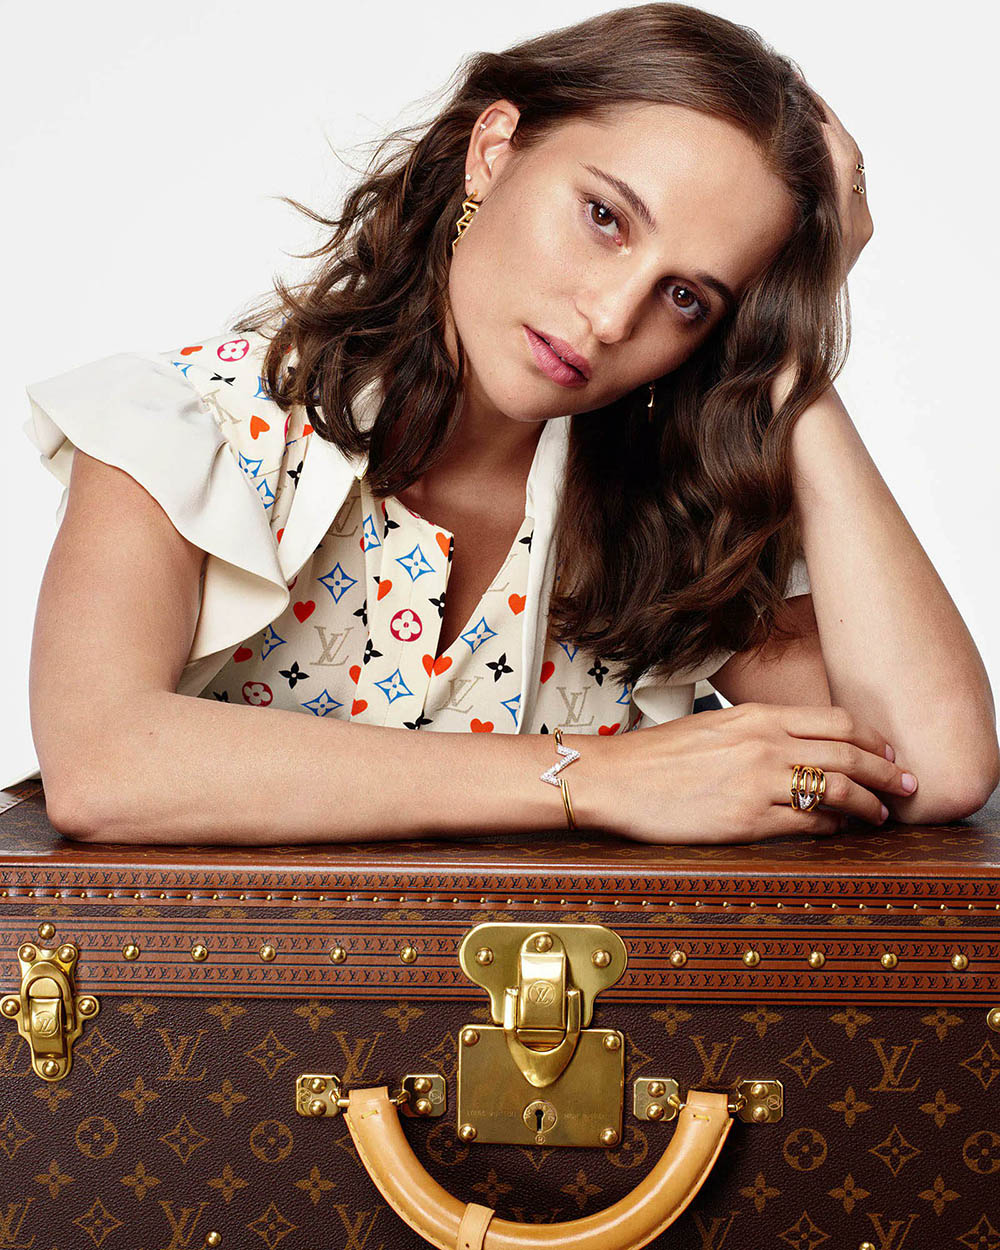 Louis Vuitton Holiday 2020 Campaign